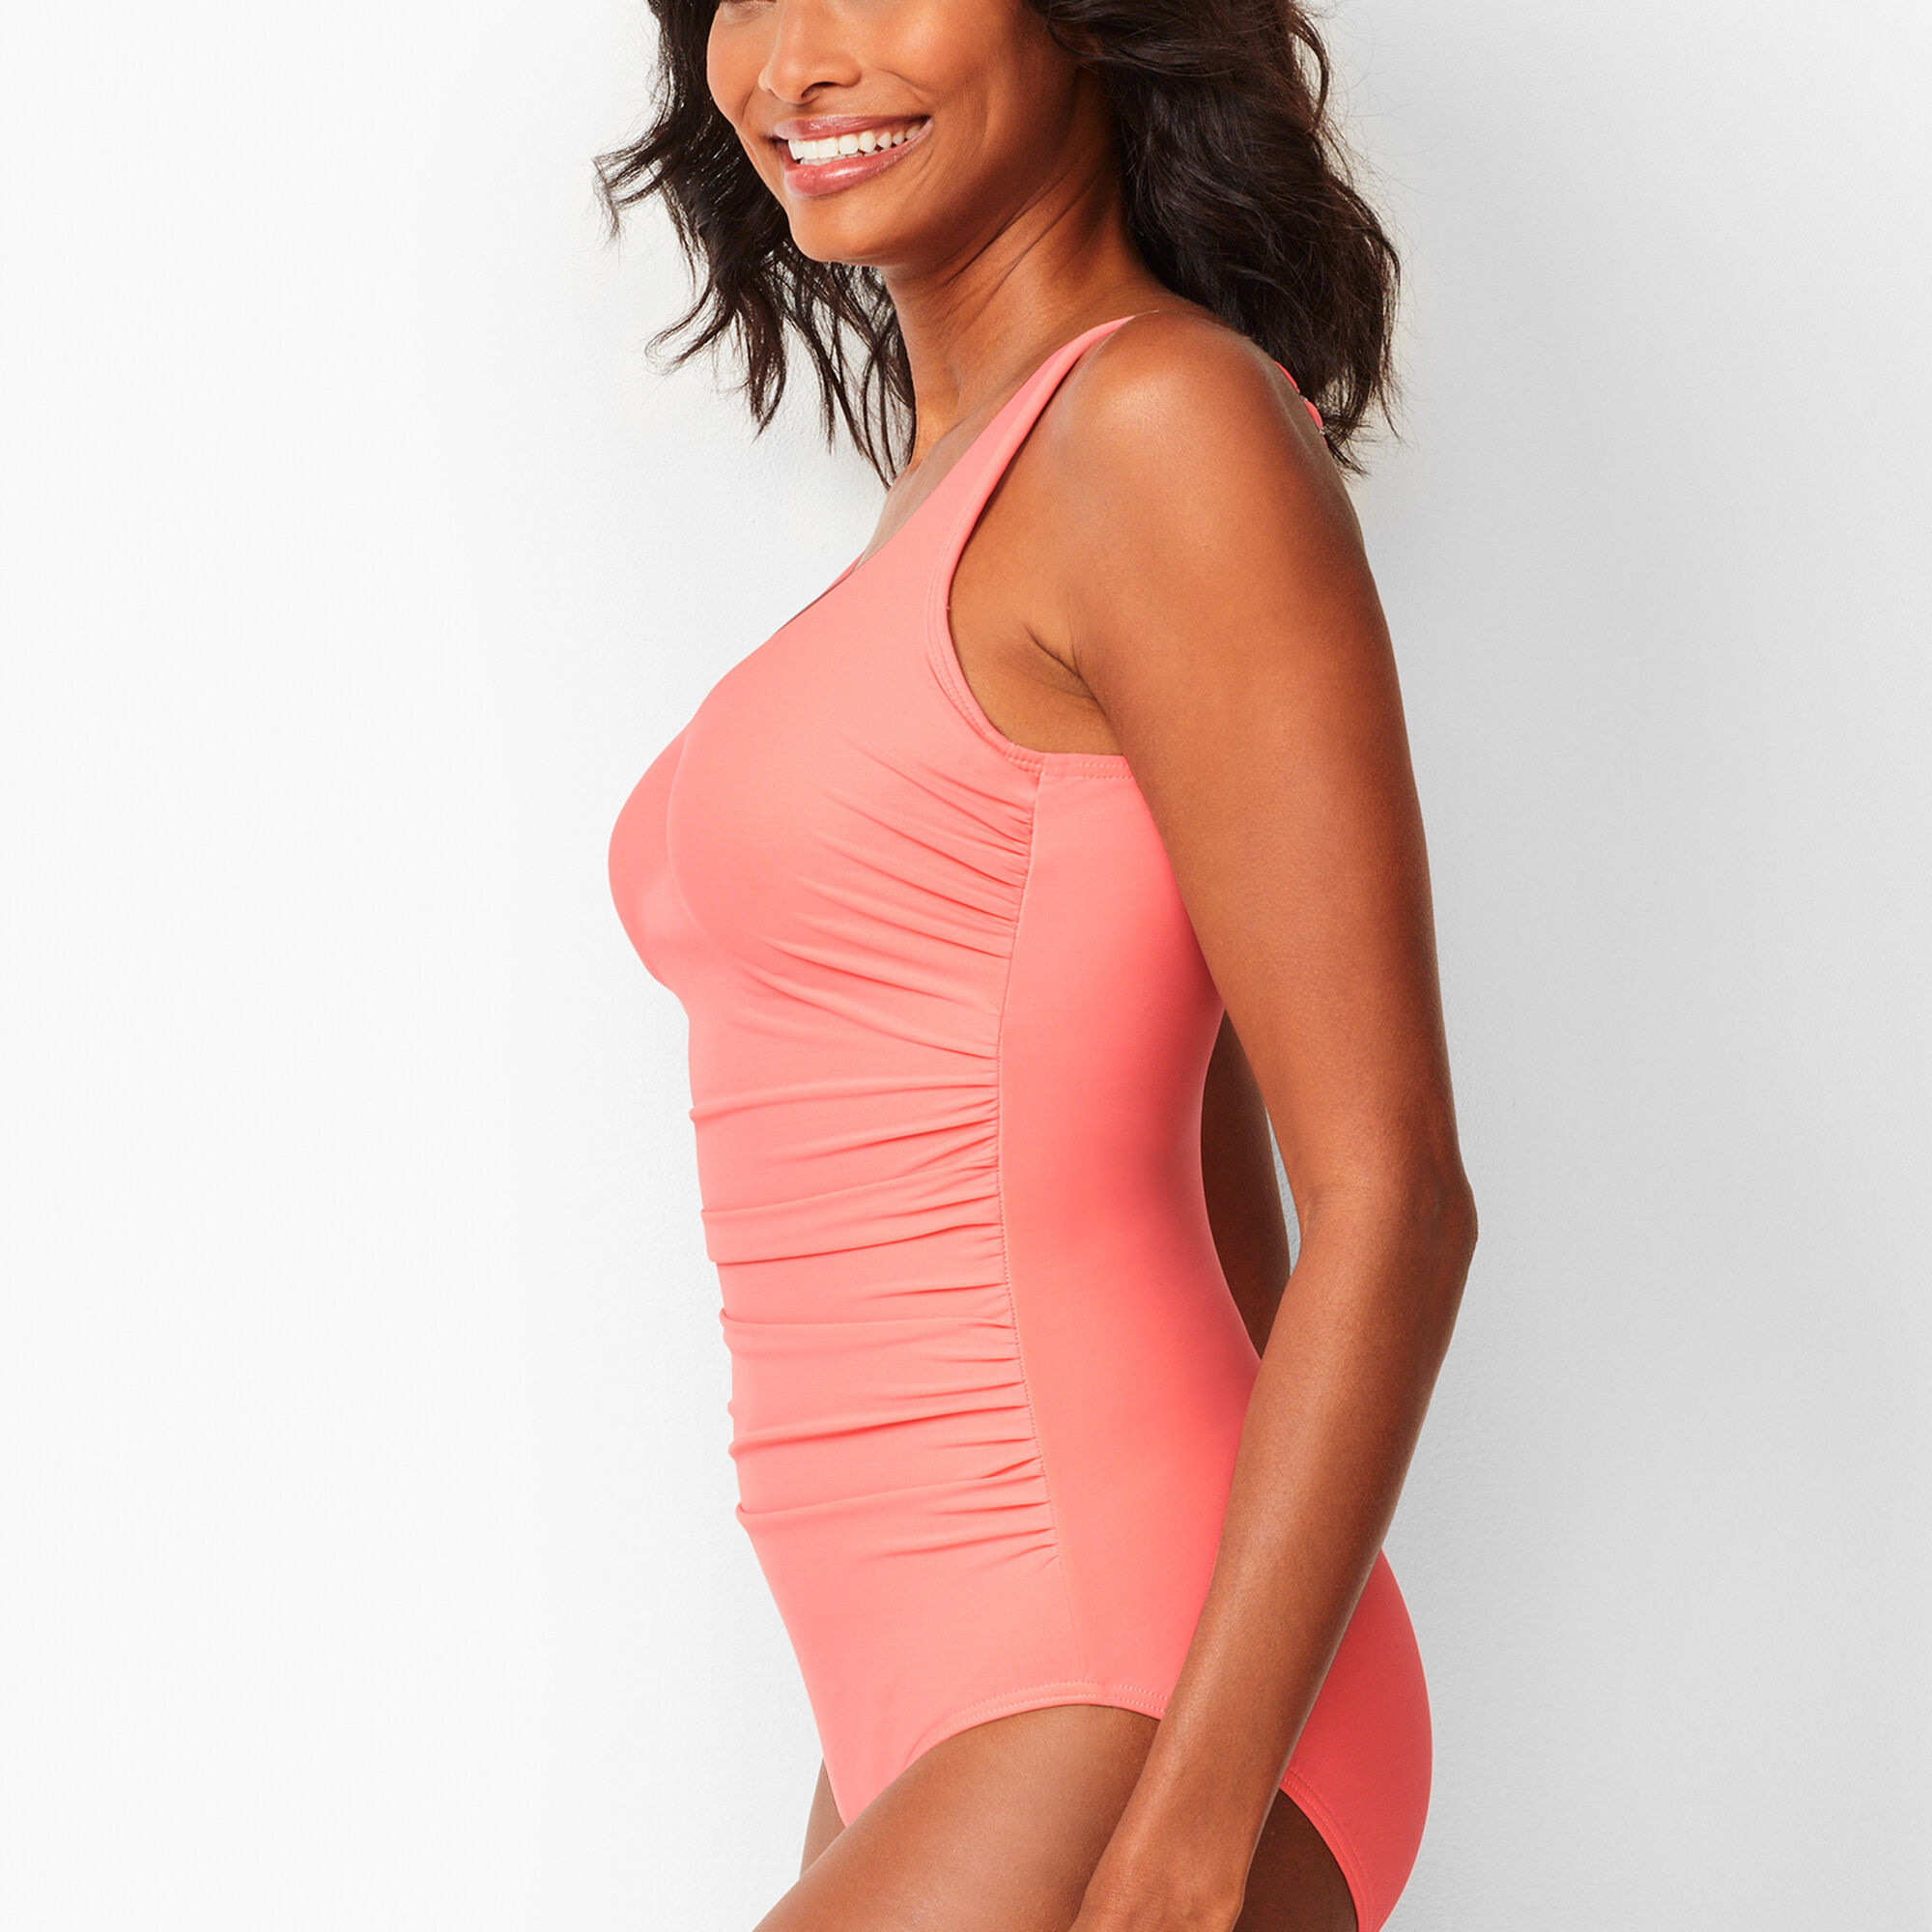 df99c5ff6d452 Miraclesuit(R) Amici V-Neck One-Piece Swimsuit - Solid